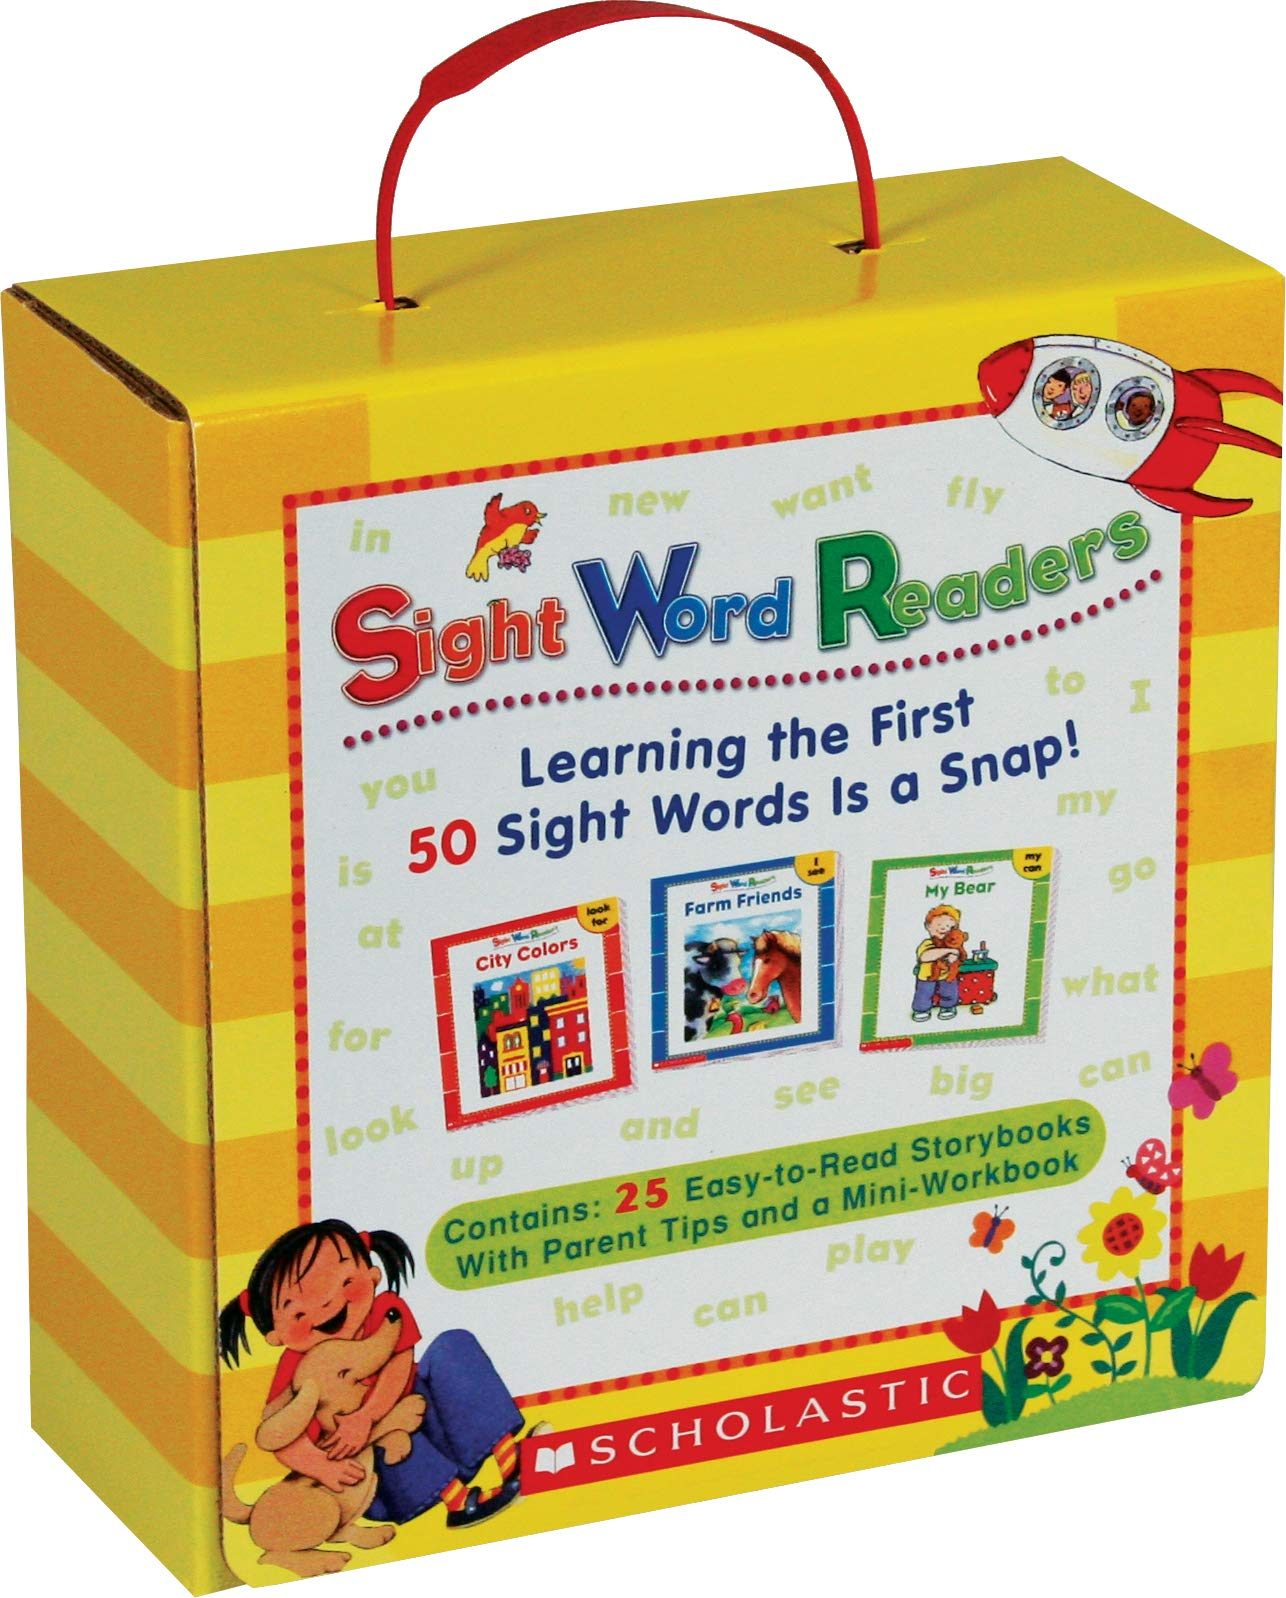 Sight Word Readers Parent Pack: Learning the First 50 Sight Words s a Snap! by Scholastic